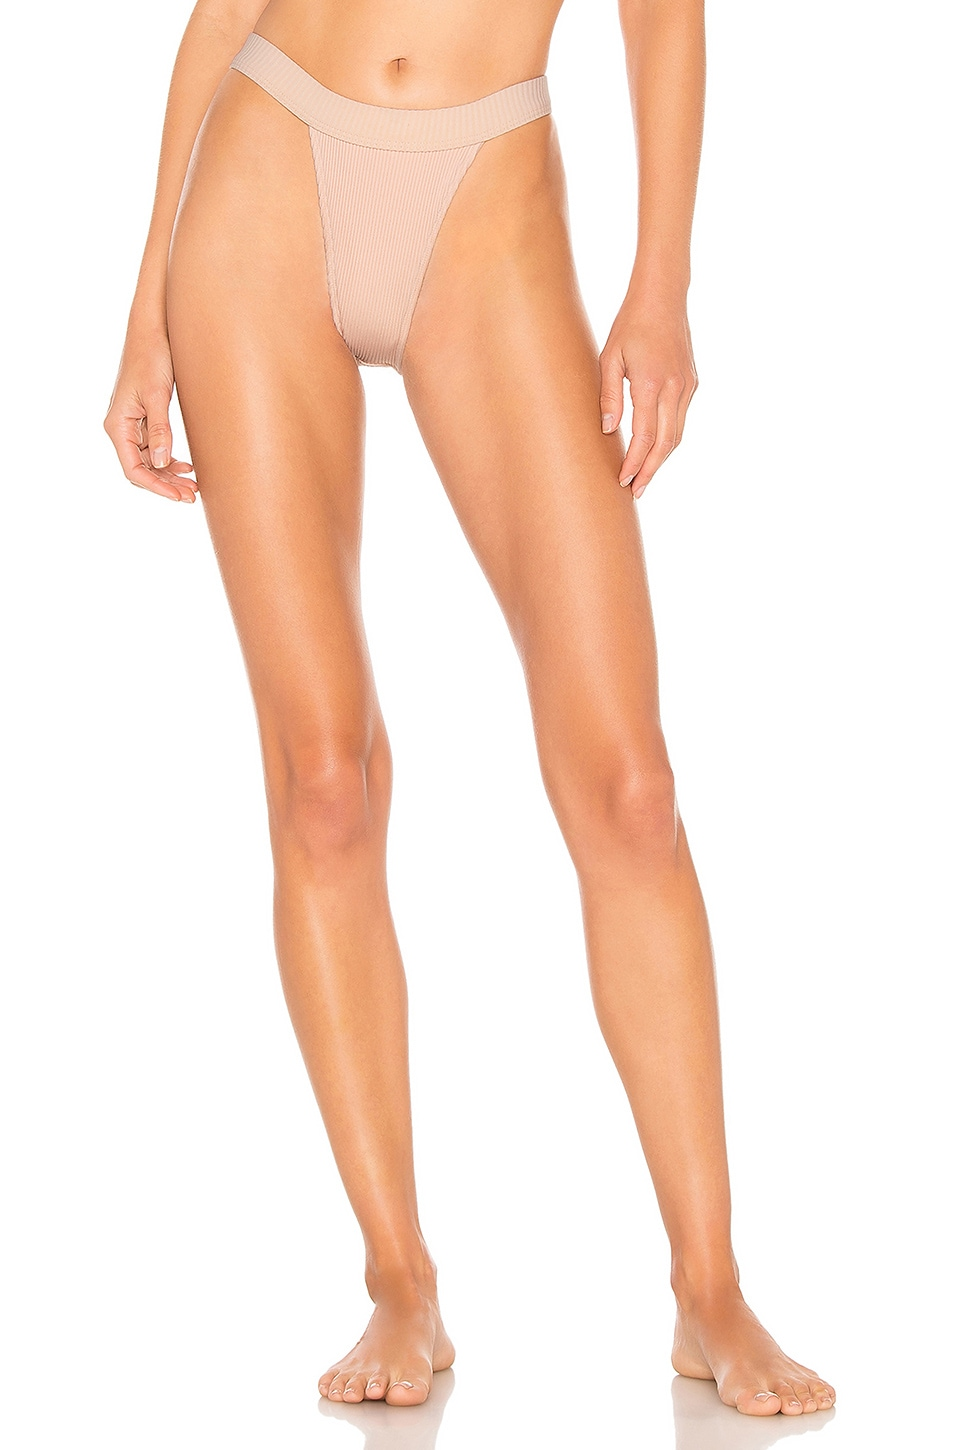 MINIMALE ANIMALE Overdrive Rib Brief Bikini Bottom in Island